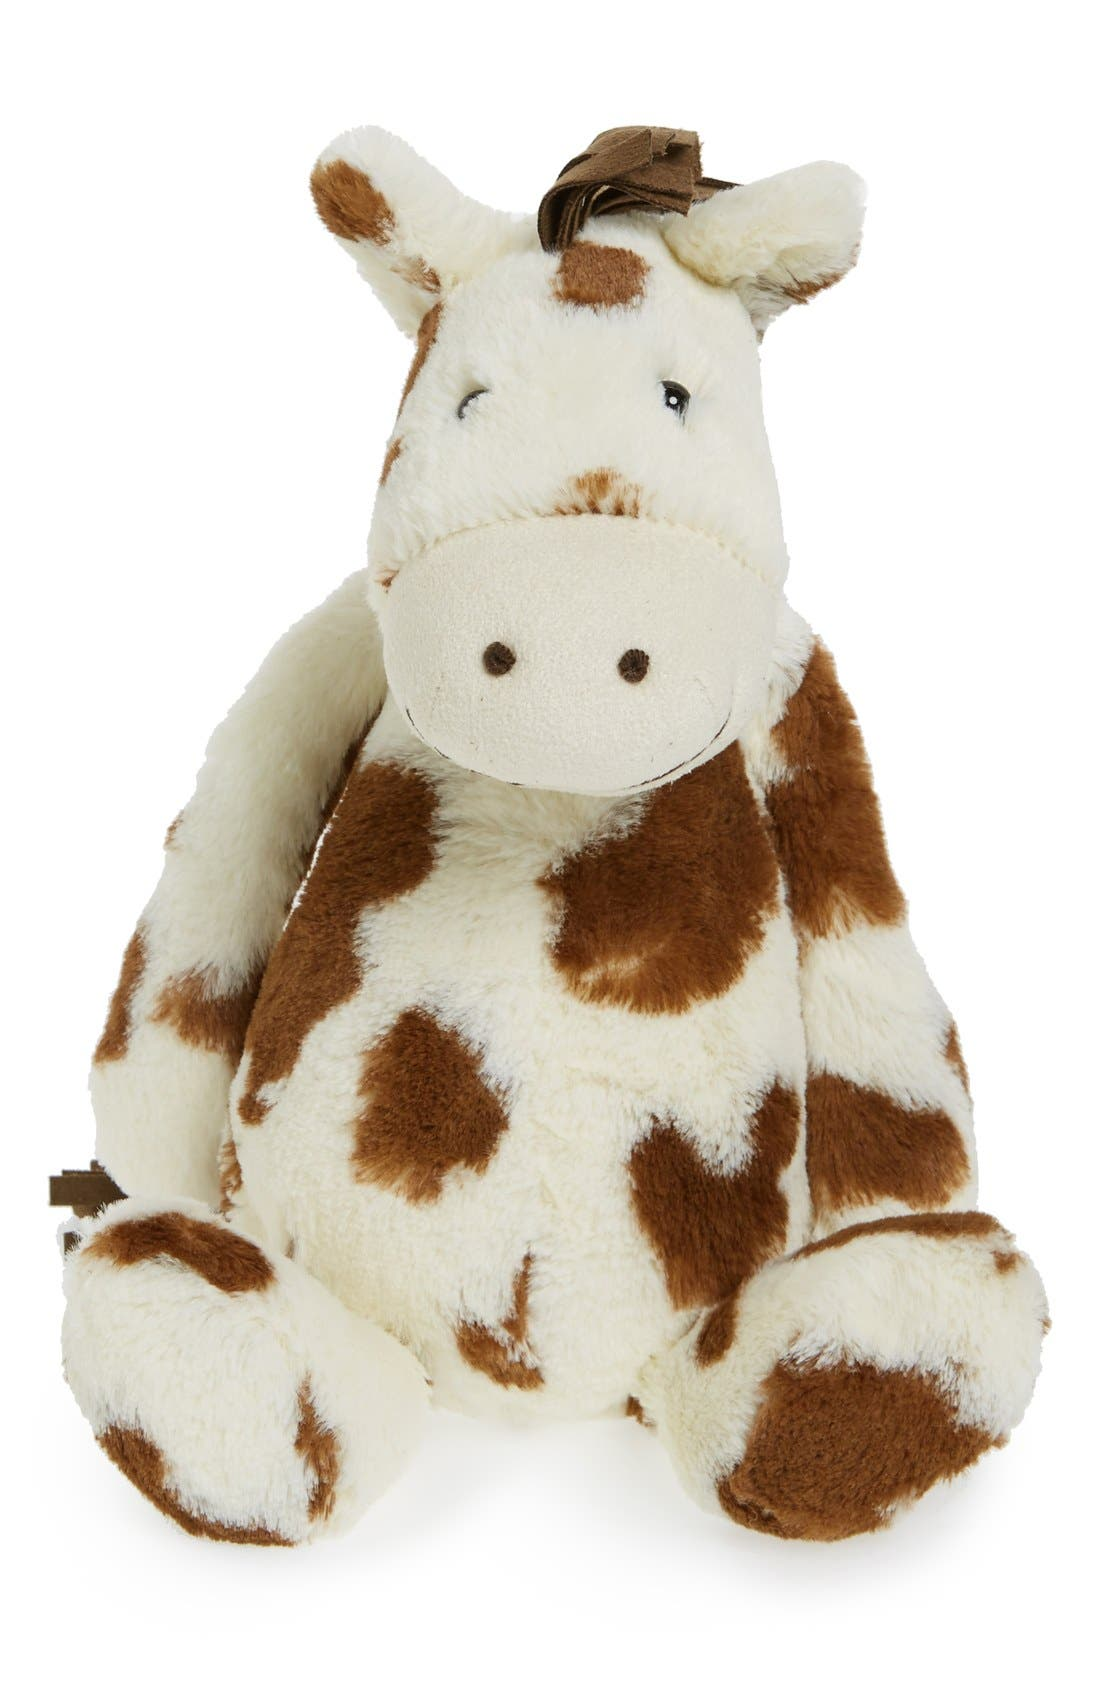 Main Image - Jellycat 'Medium Bashful Pony' Stuffed Animal